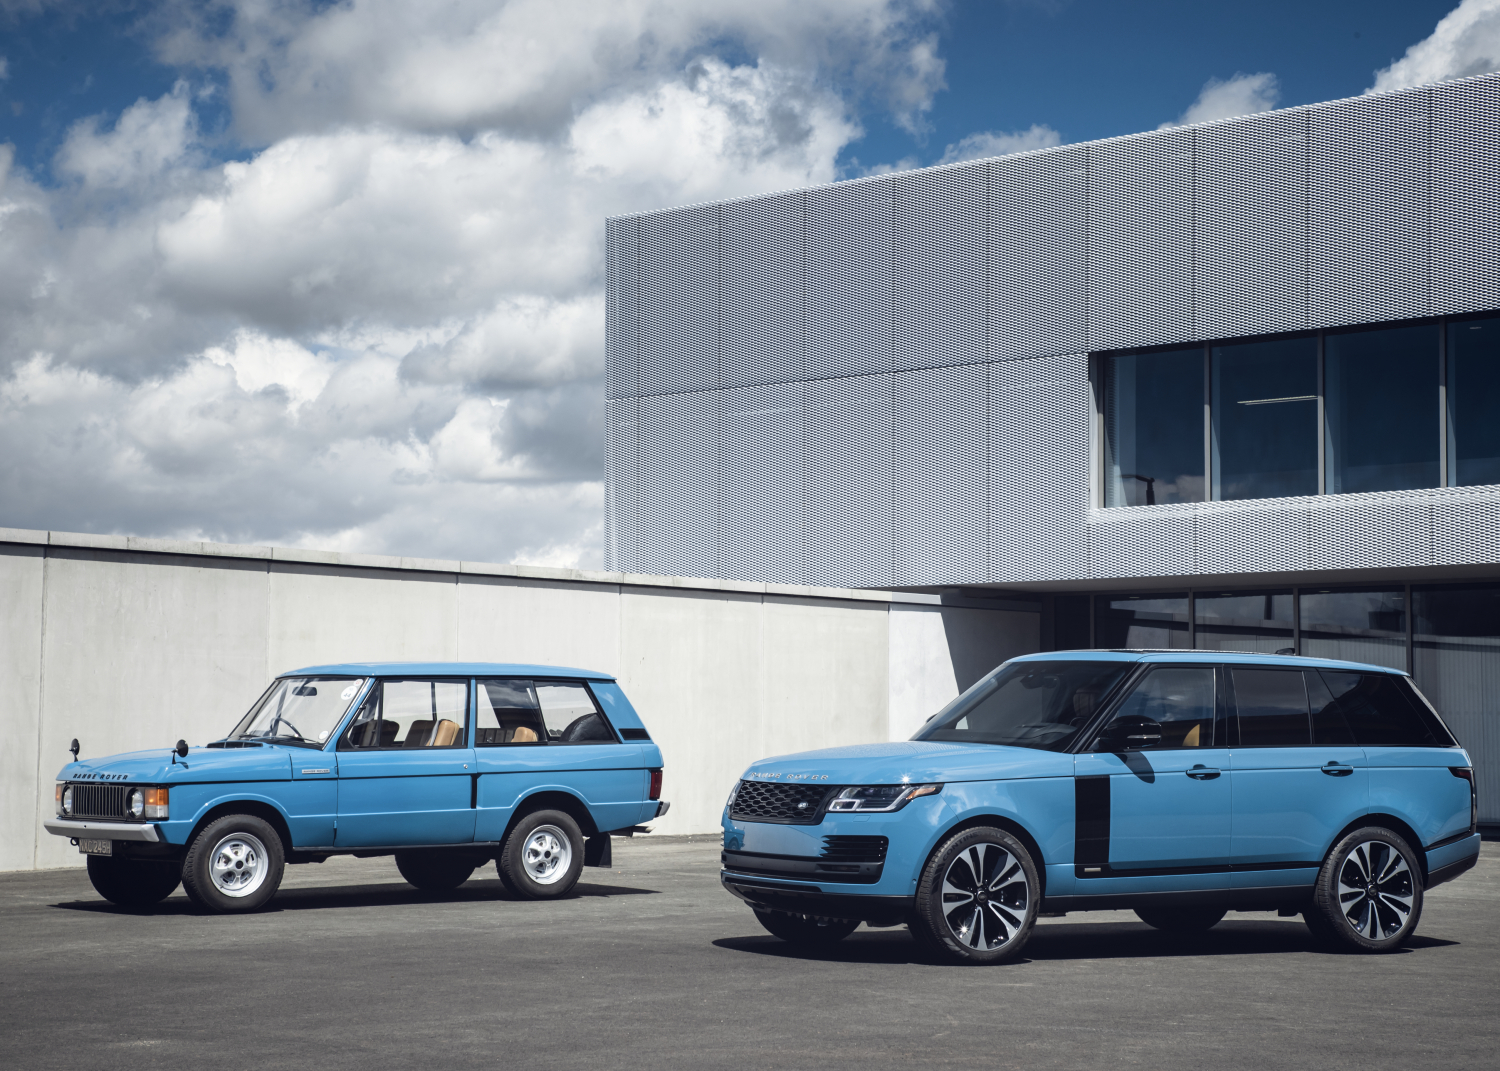 Range Rover Marks 50 Years of All-terrain Innovation and Luxury with Exclusive New Limited Edition - Image 1